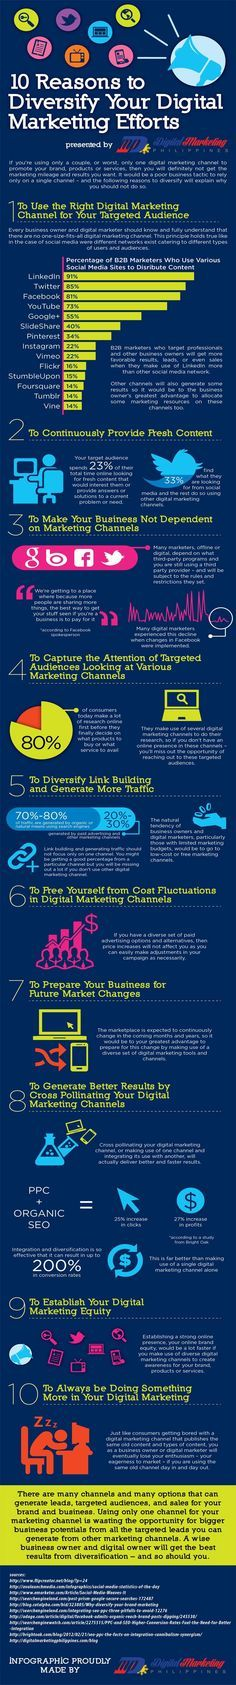 10 Reasons to Diversify #Digital #Marketing! #Web #Business #Entrepreneur #Startup #Content #Tech